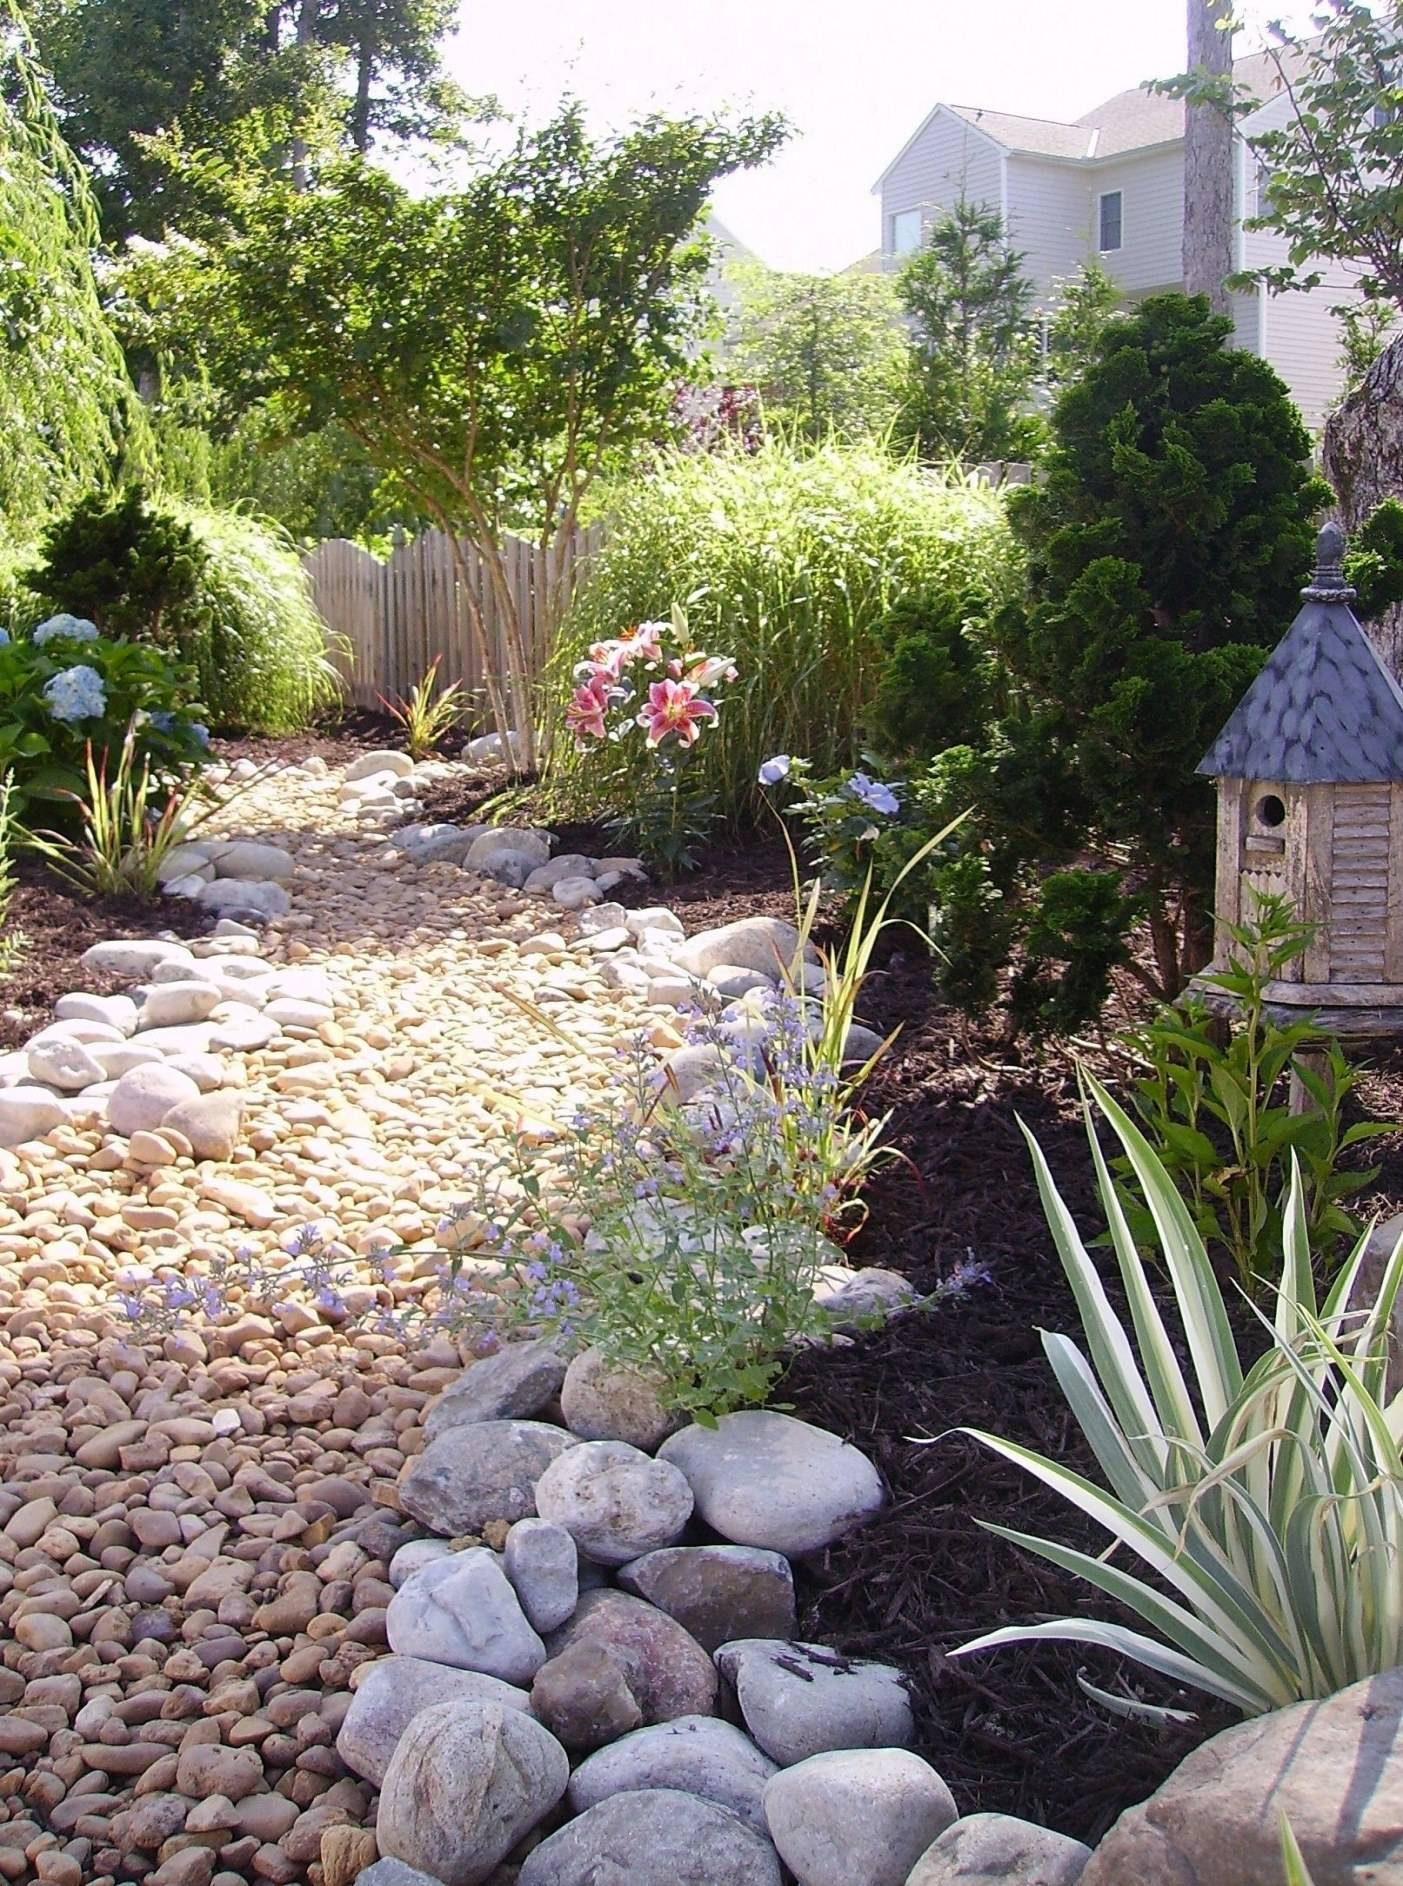 rain garden ideas amazing rock garden decor ideas for front and back yard 03 of rain garden ideas